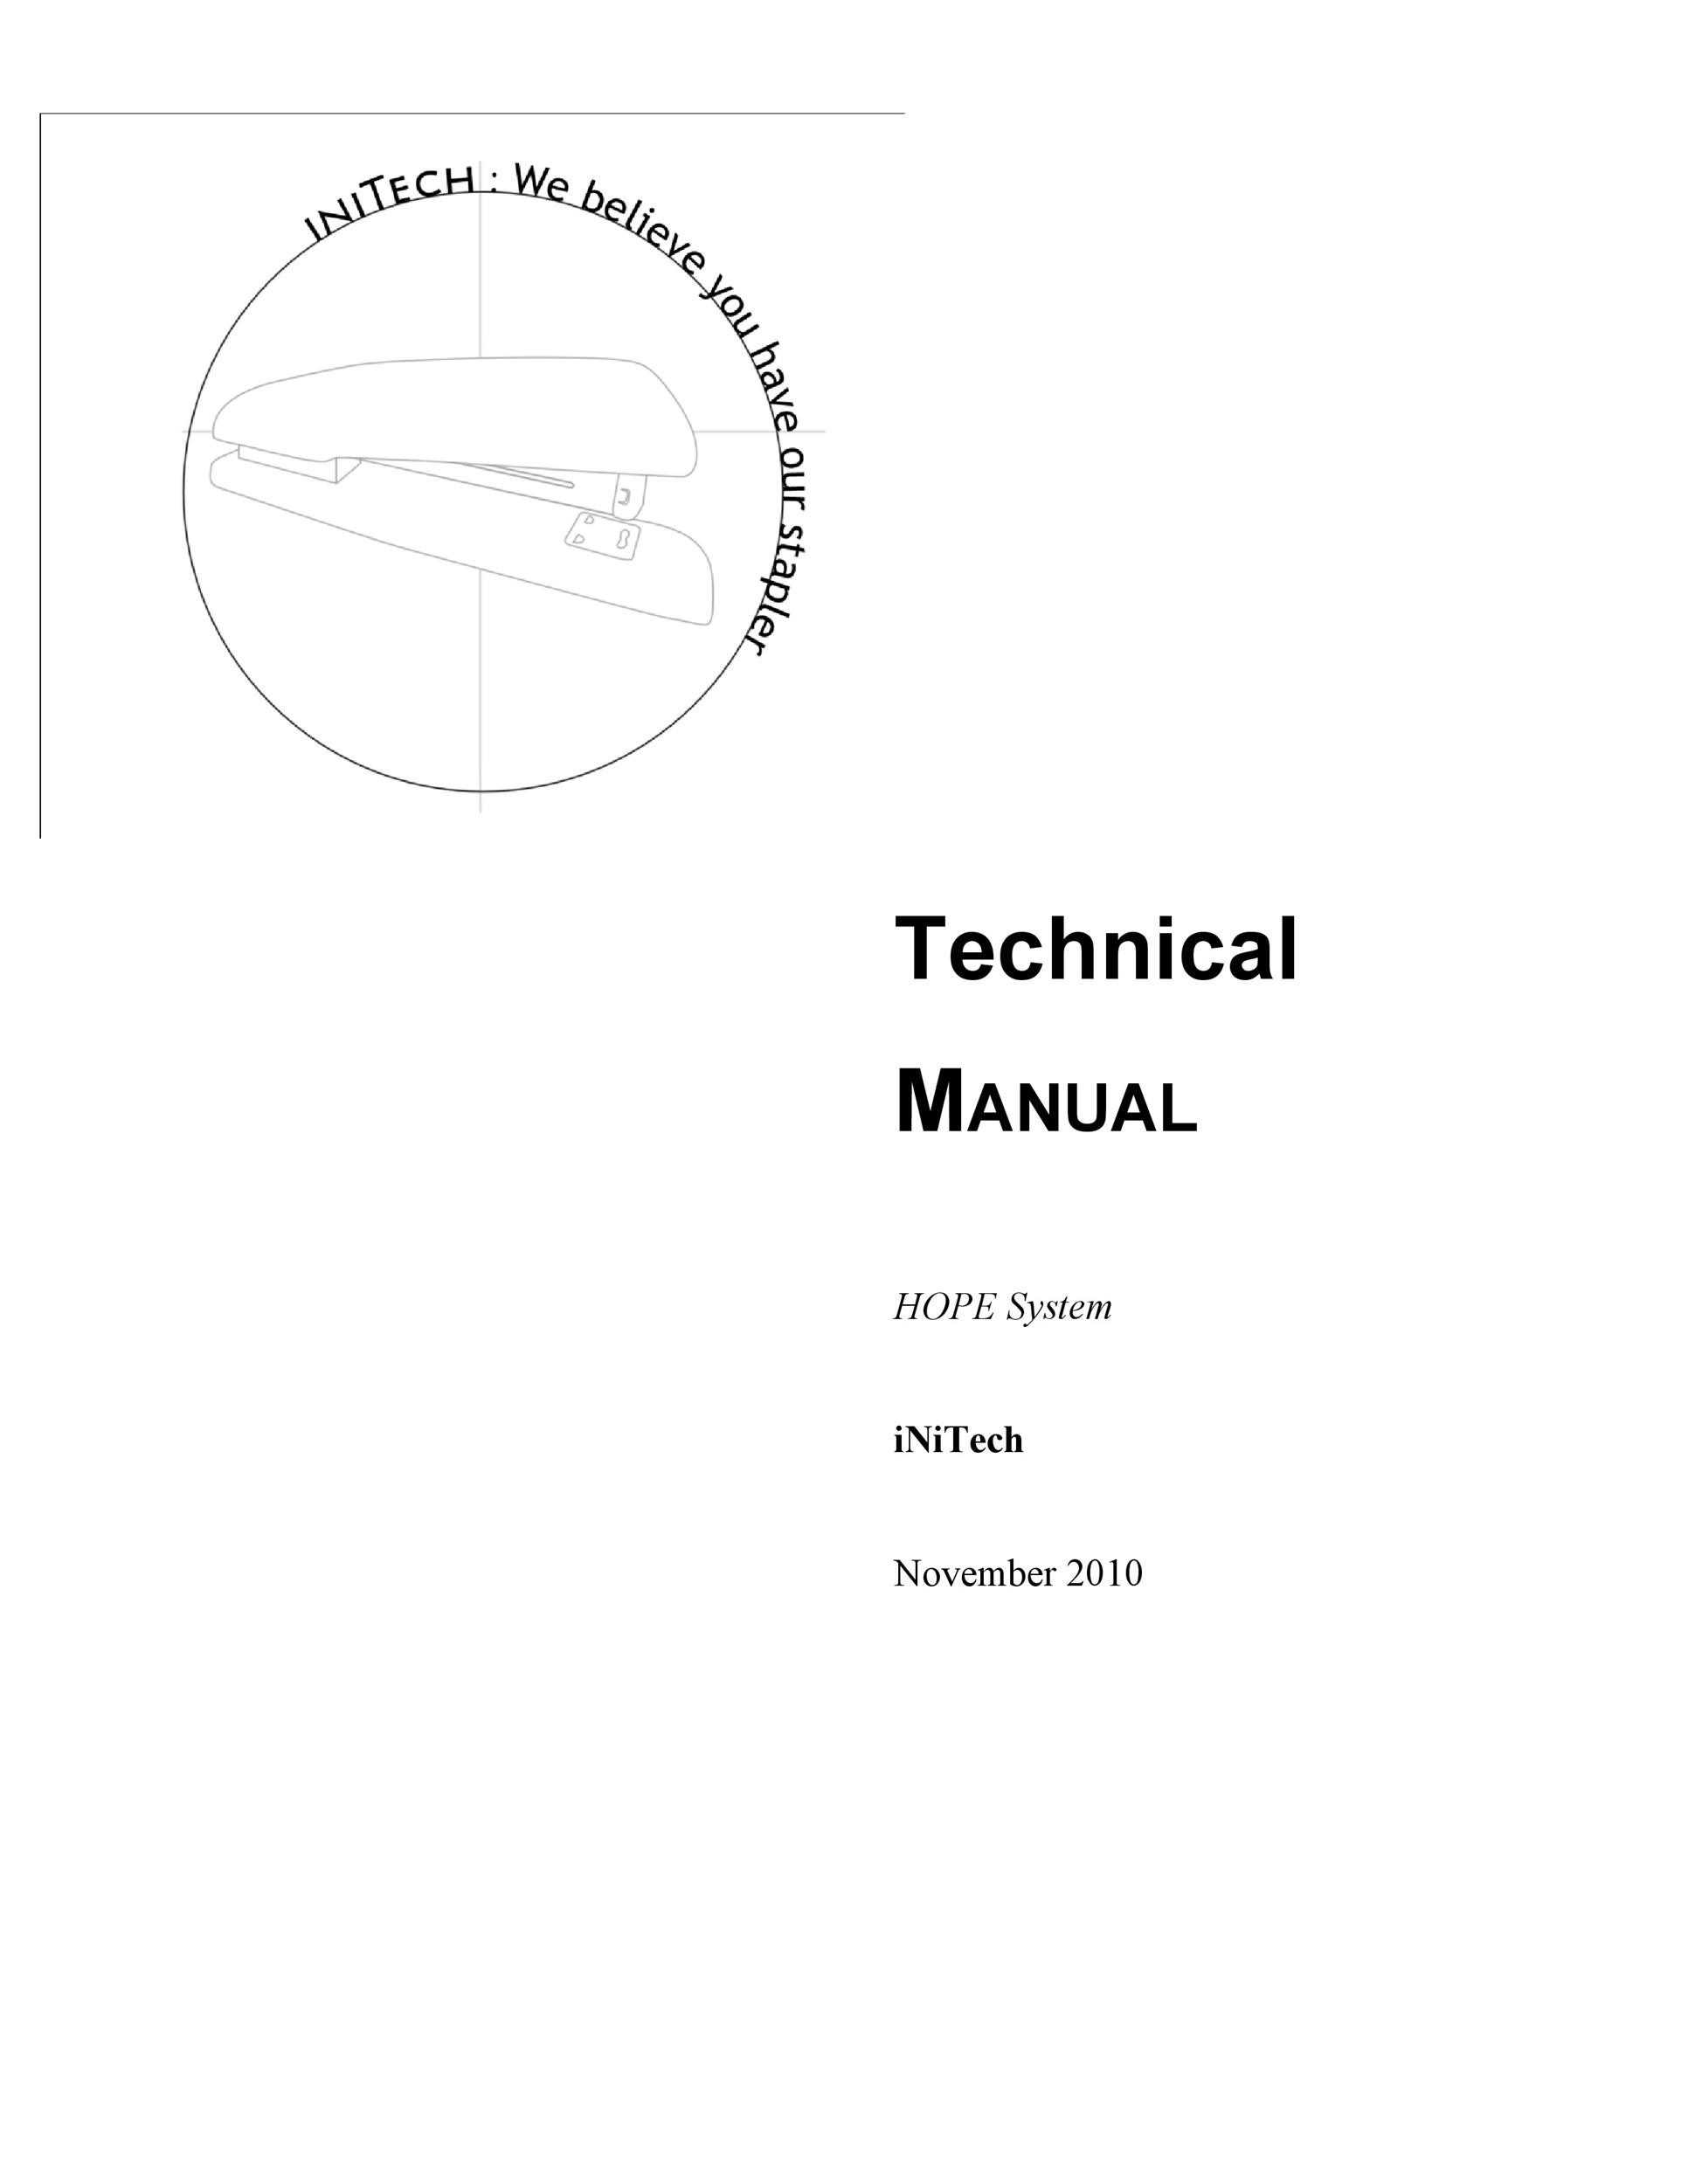 Free instruction manual template 02